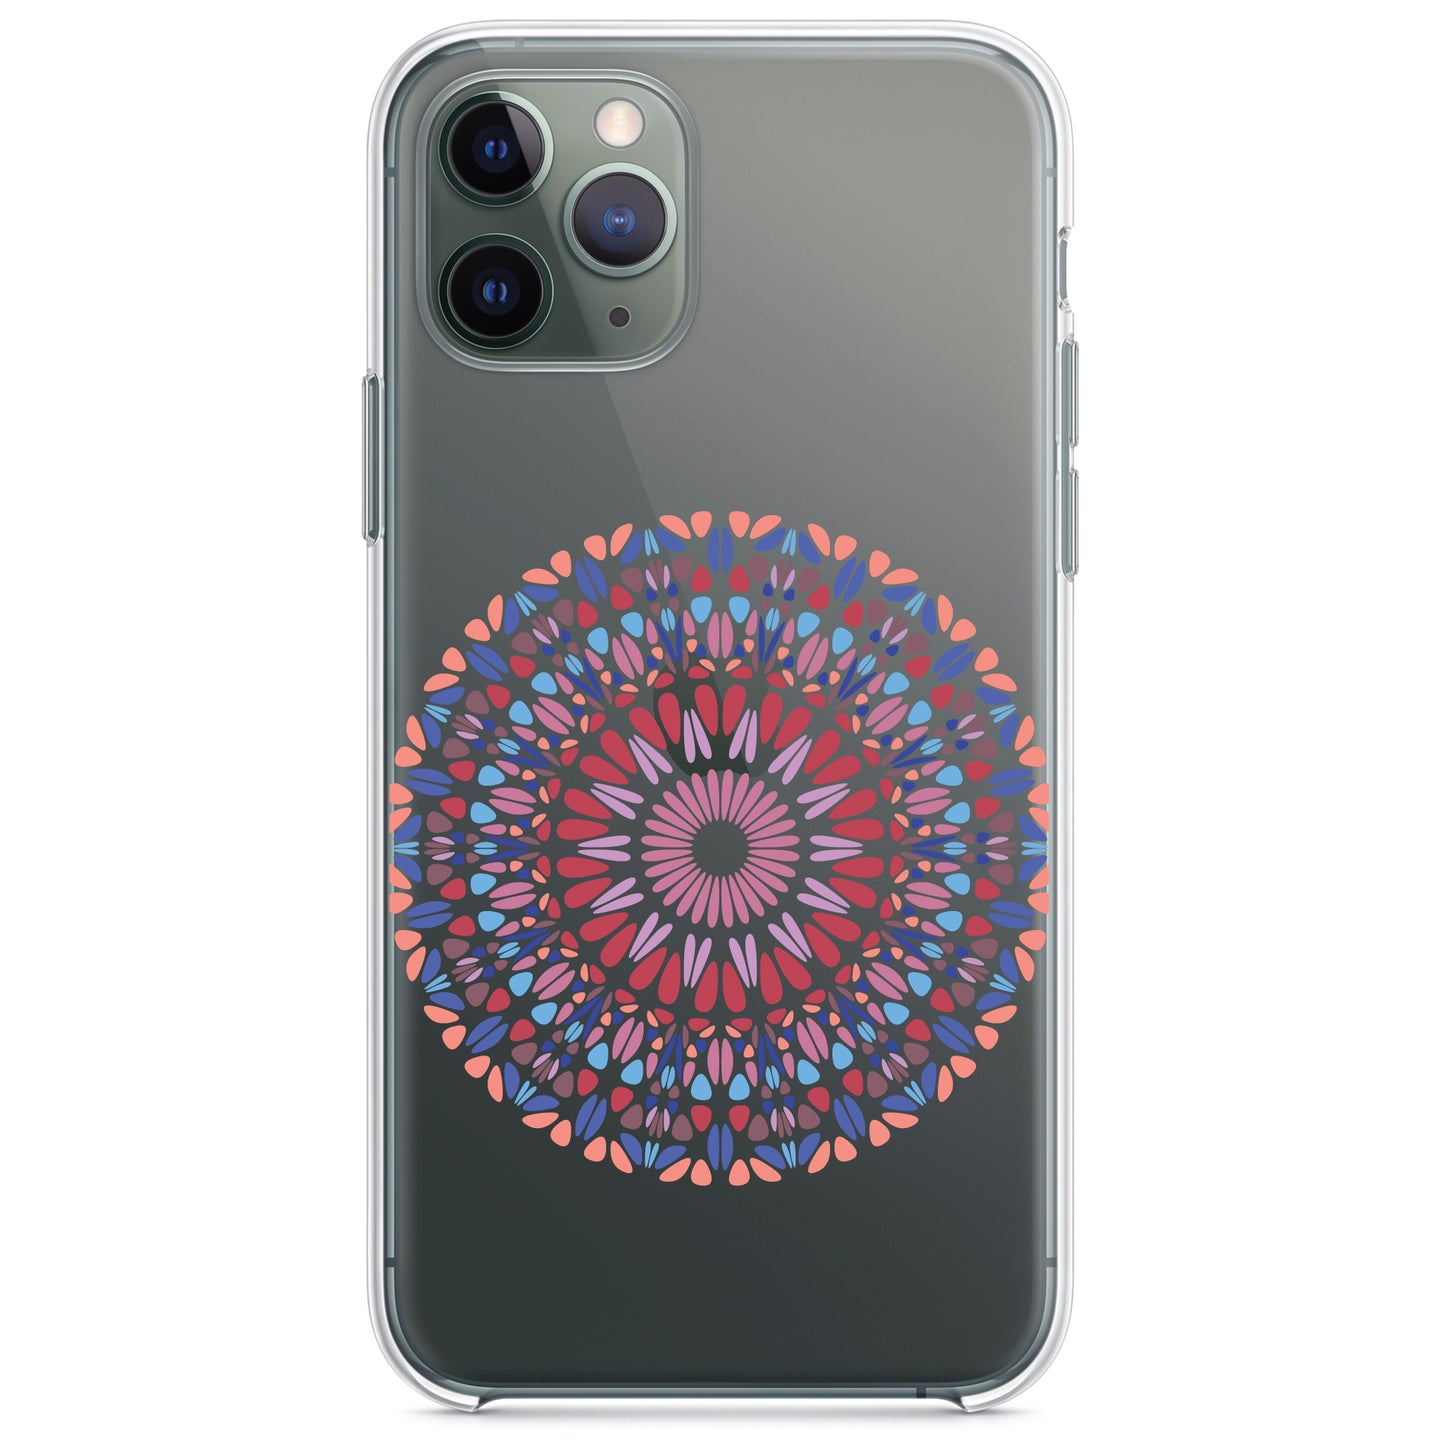 DistinctInk® Clear Shockproof Hybrid Case for Apple iPhone / Samsung Galaxy / Google Pixel - Modern Mandala - Blue Red Pink